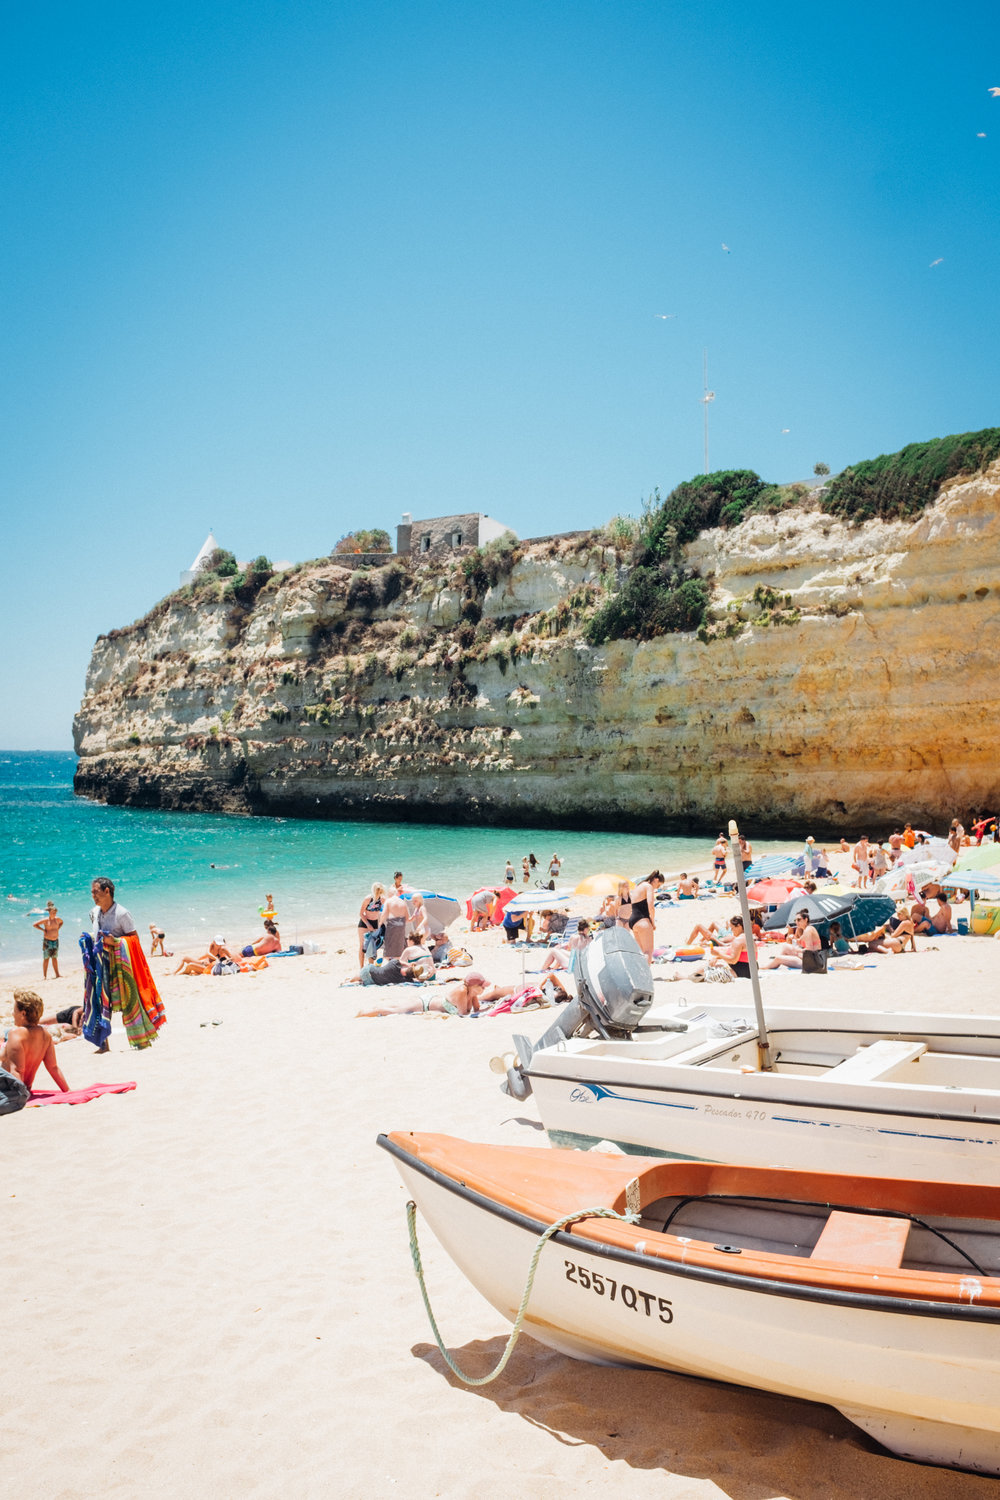 A beautiful beach in Algarve, Portugal. Photo: Marine Raynard